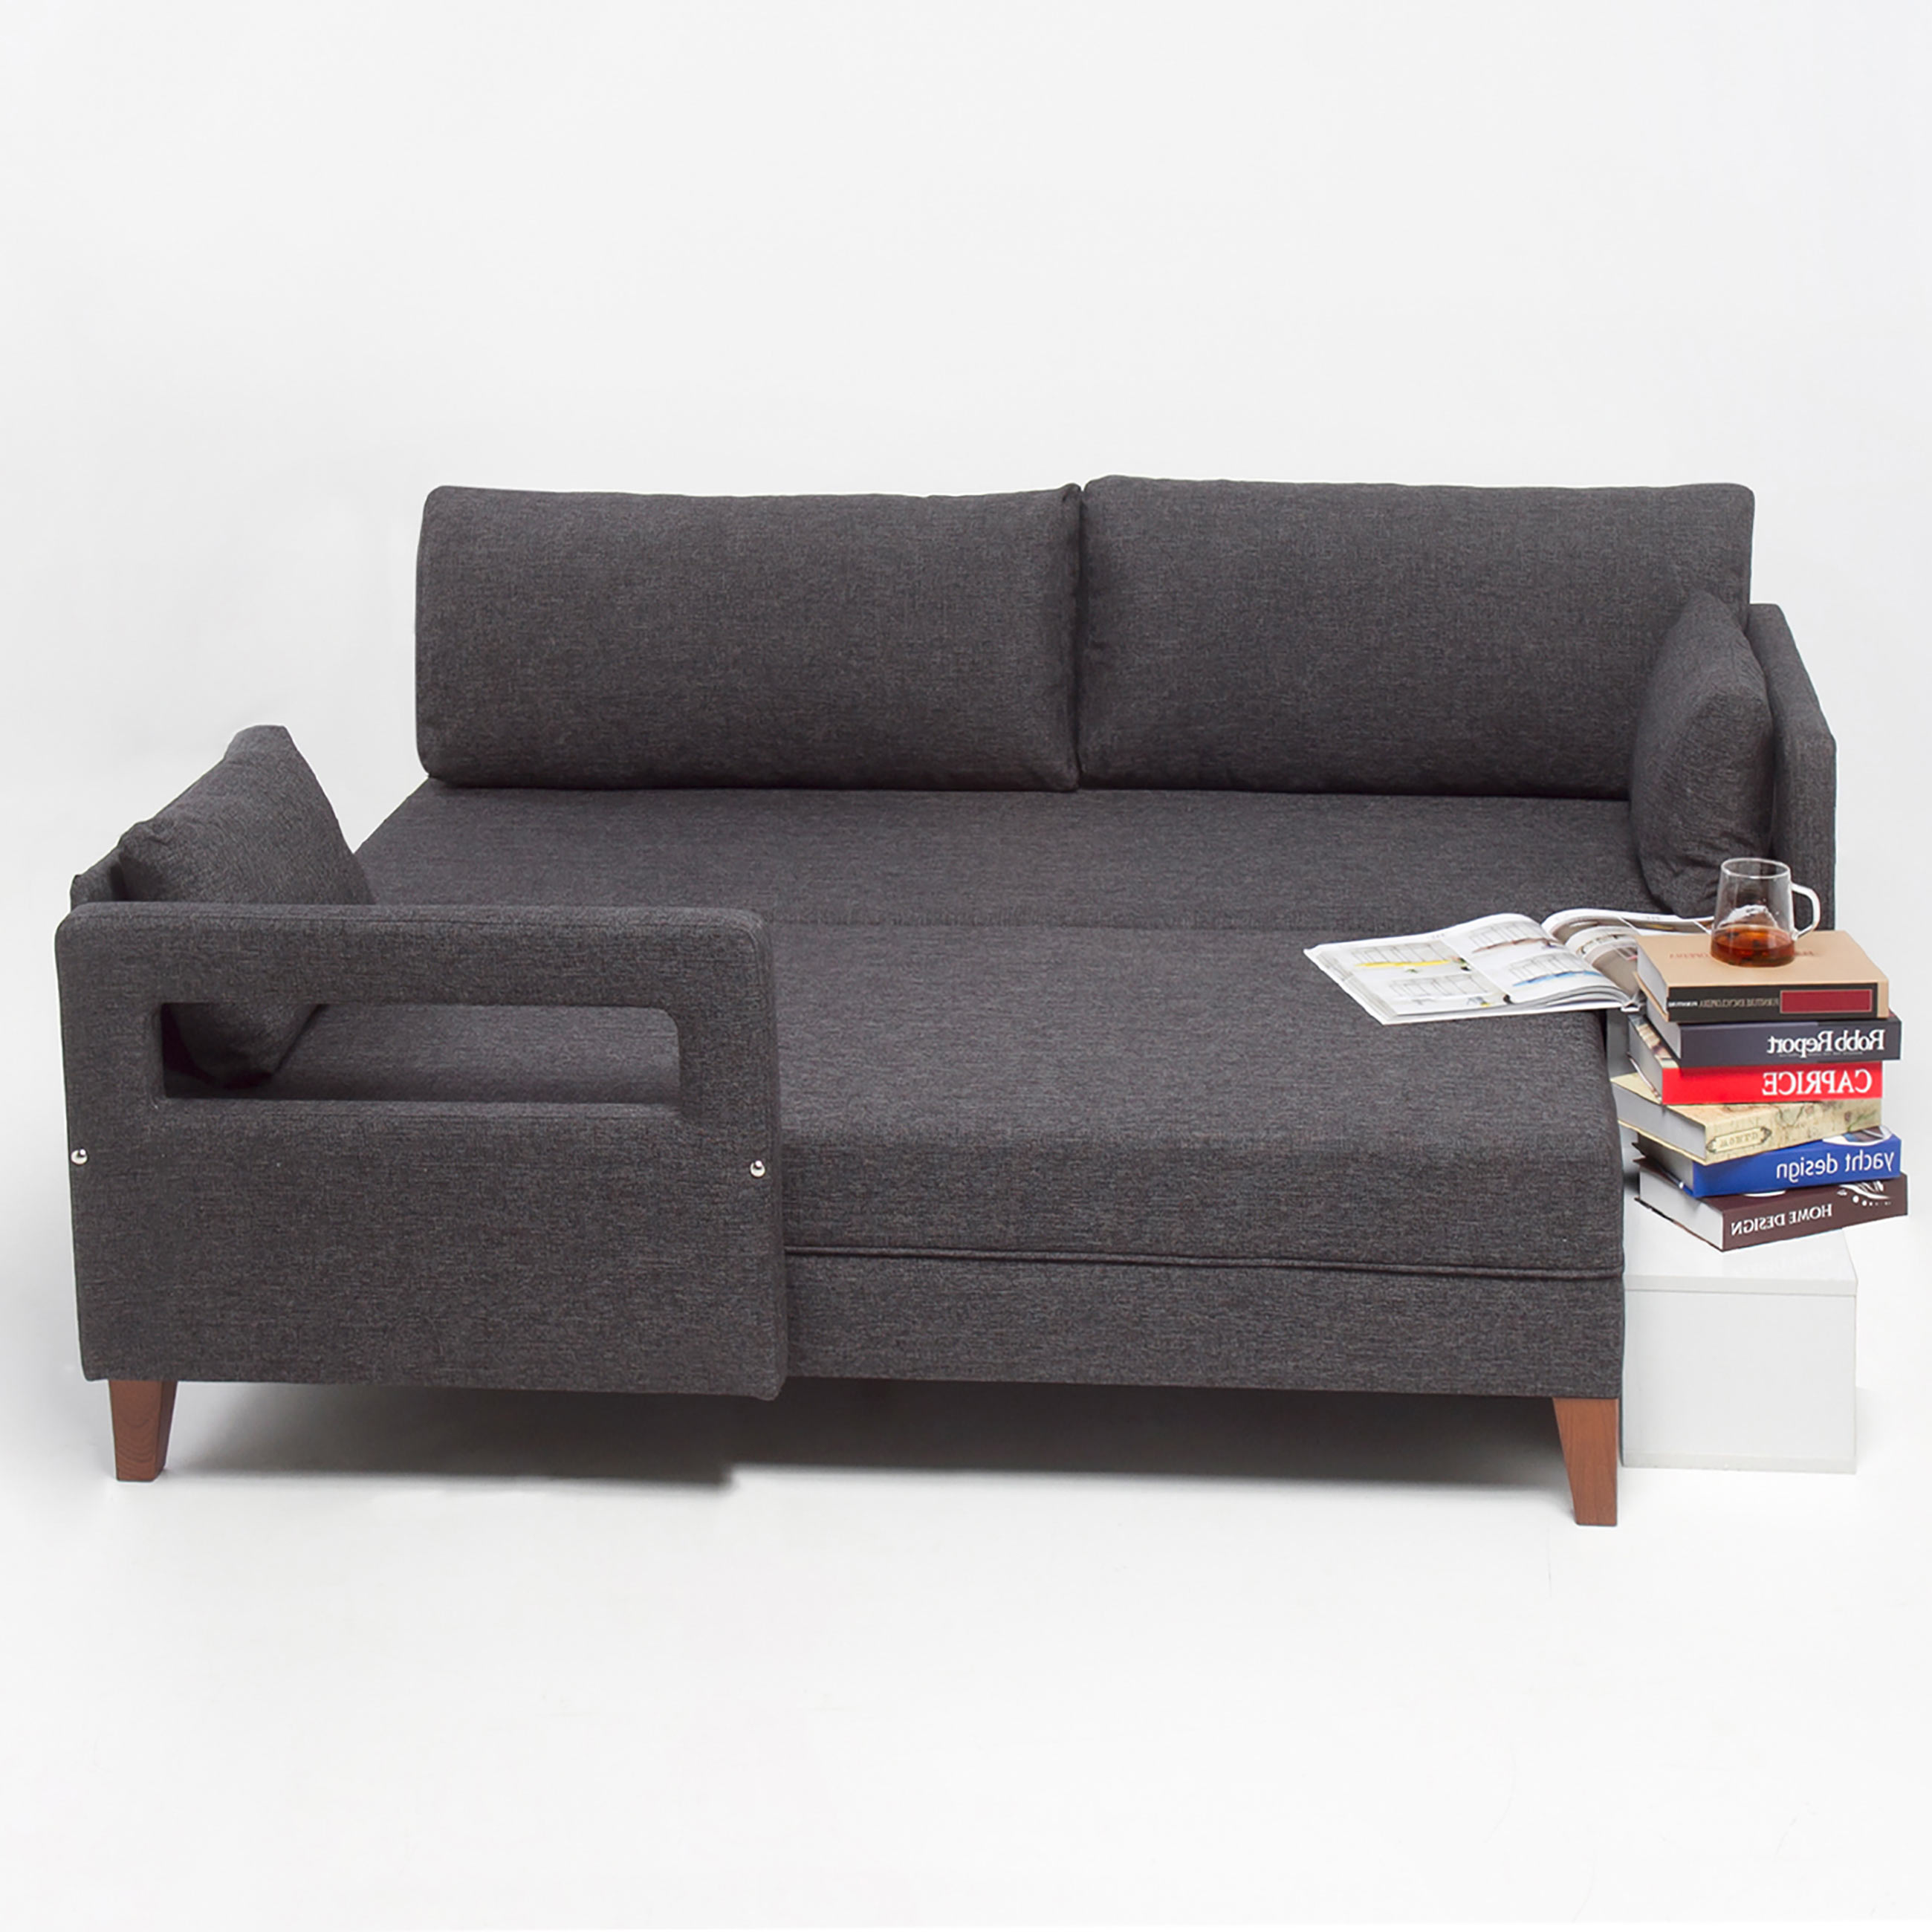 Furniture Usa Of Comfort Gray Fabric Sectional Sofa By Empire Furniture Usa